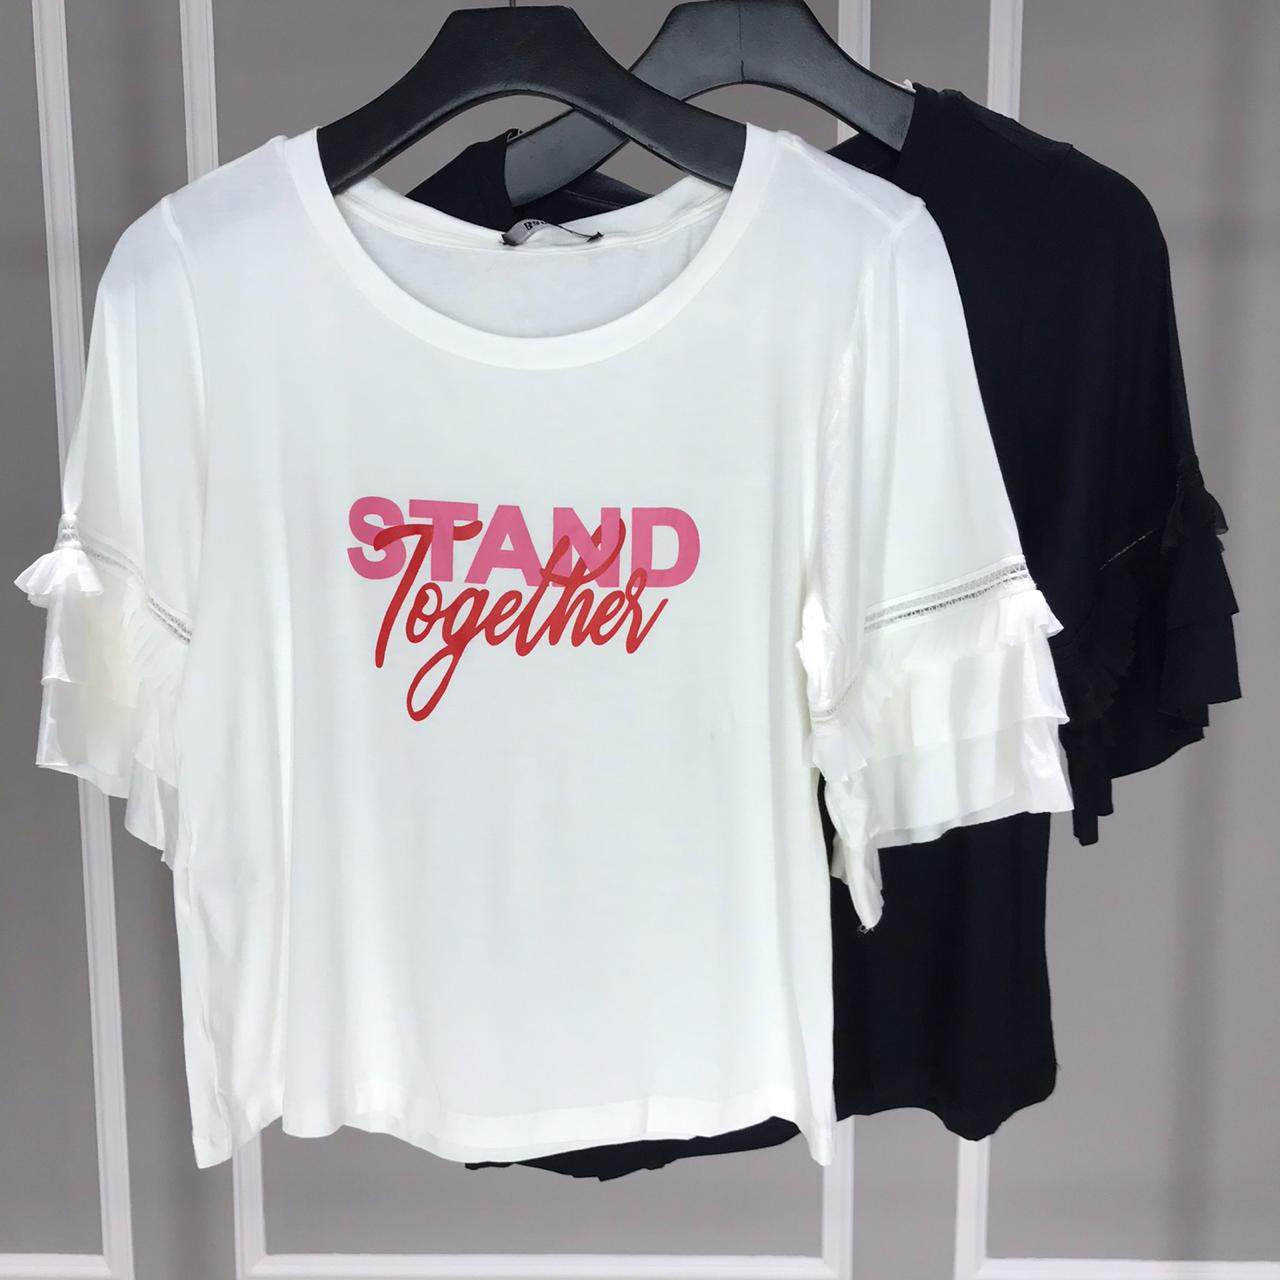 T-SHIRT STAND  - ITEM 3